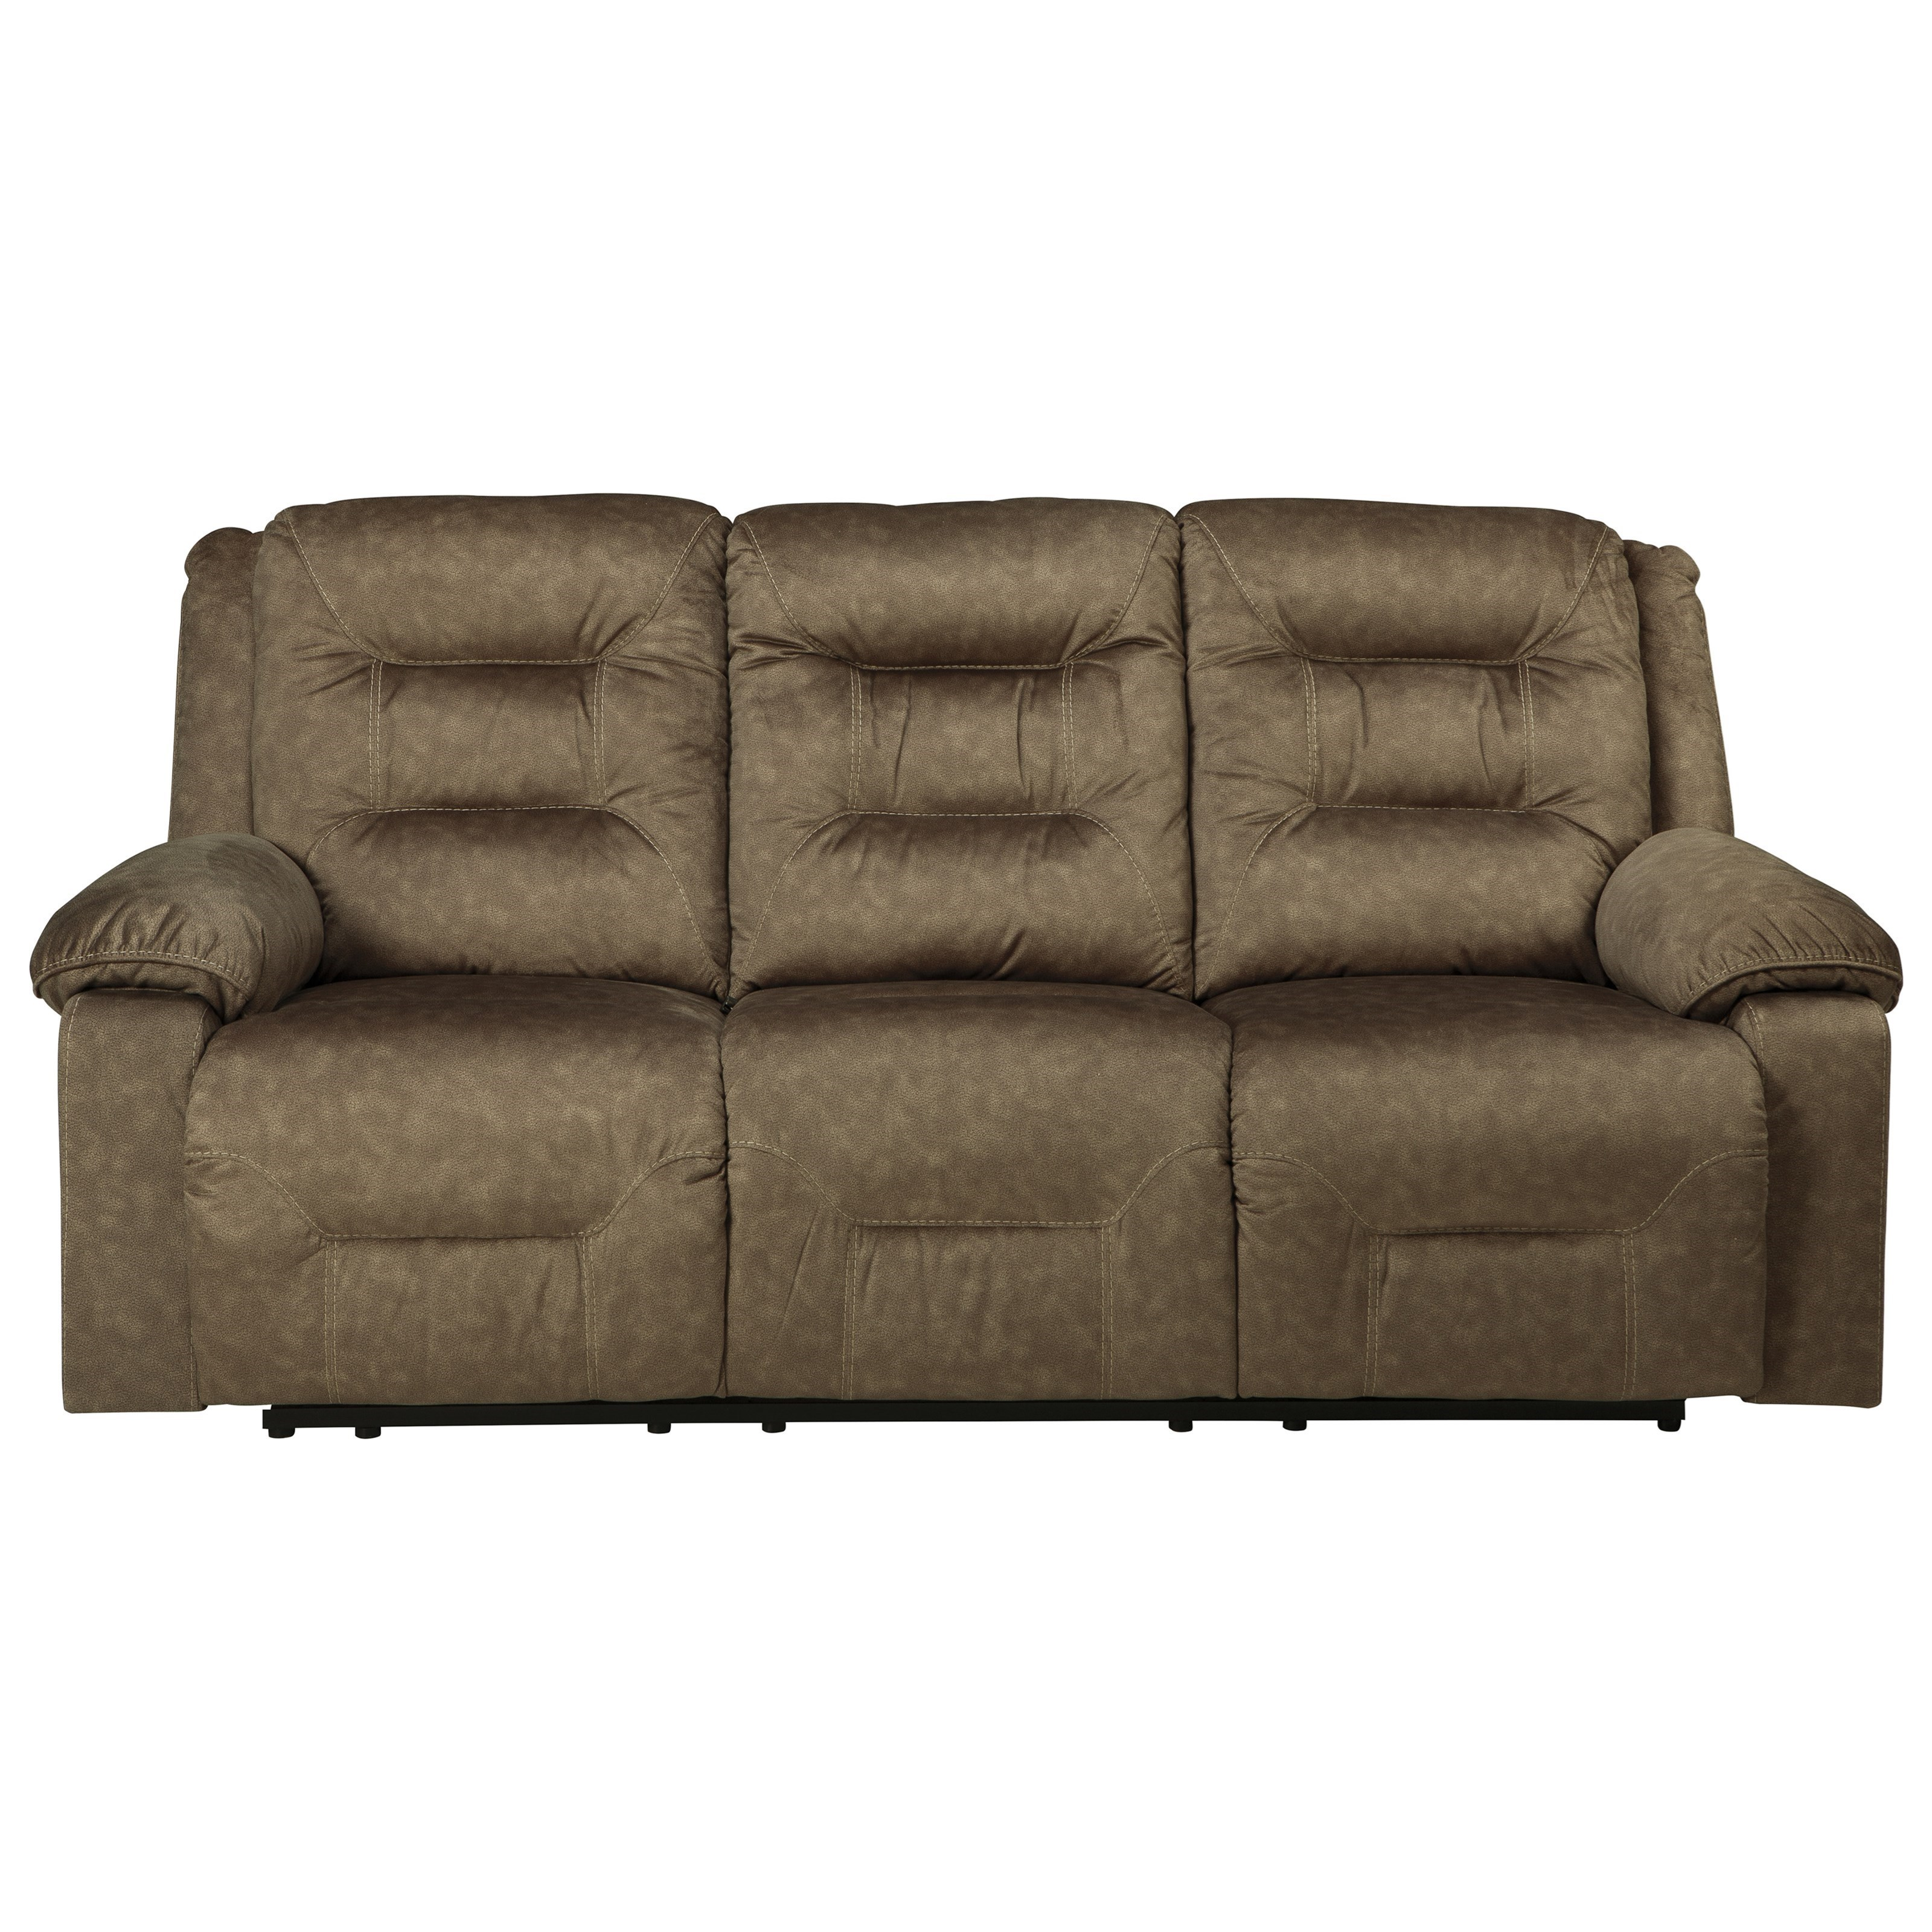 Ashley (Signature Design) Waldheim Power Reclining Sofa w/ Adjustable Headrests - Item Number: 8150115